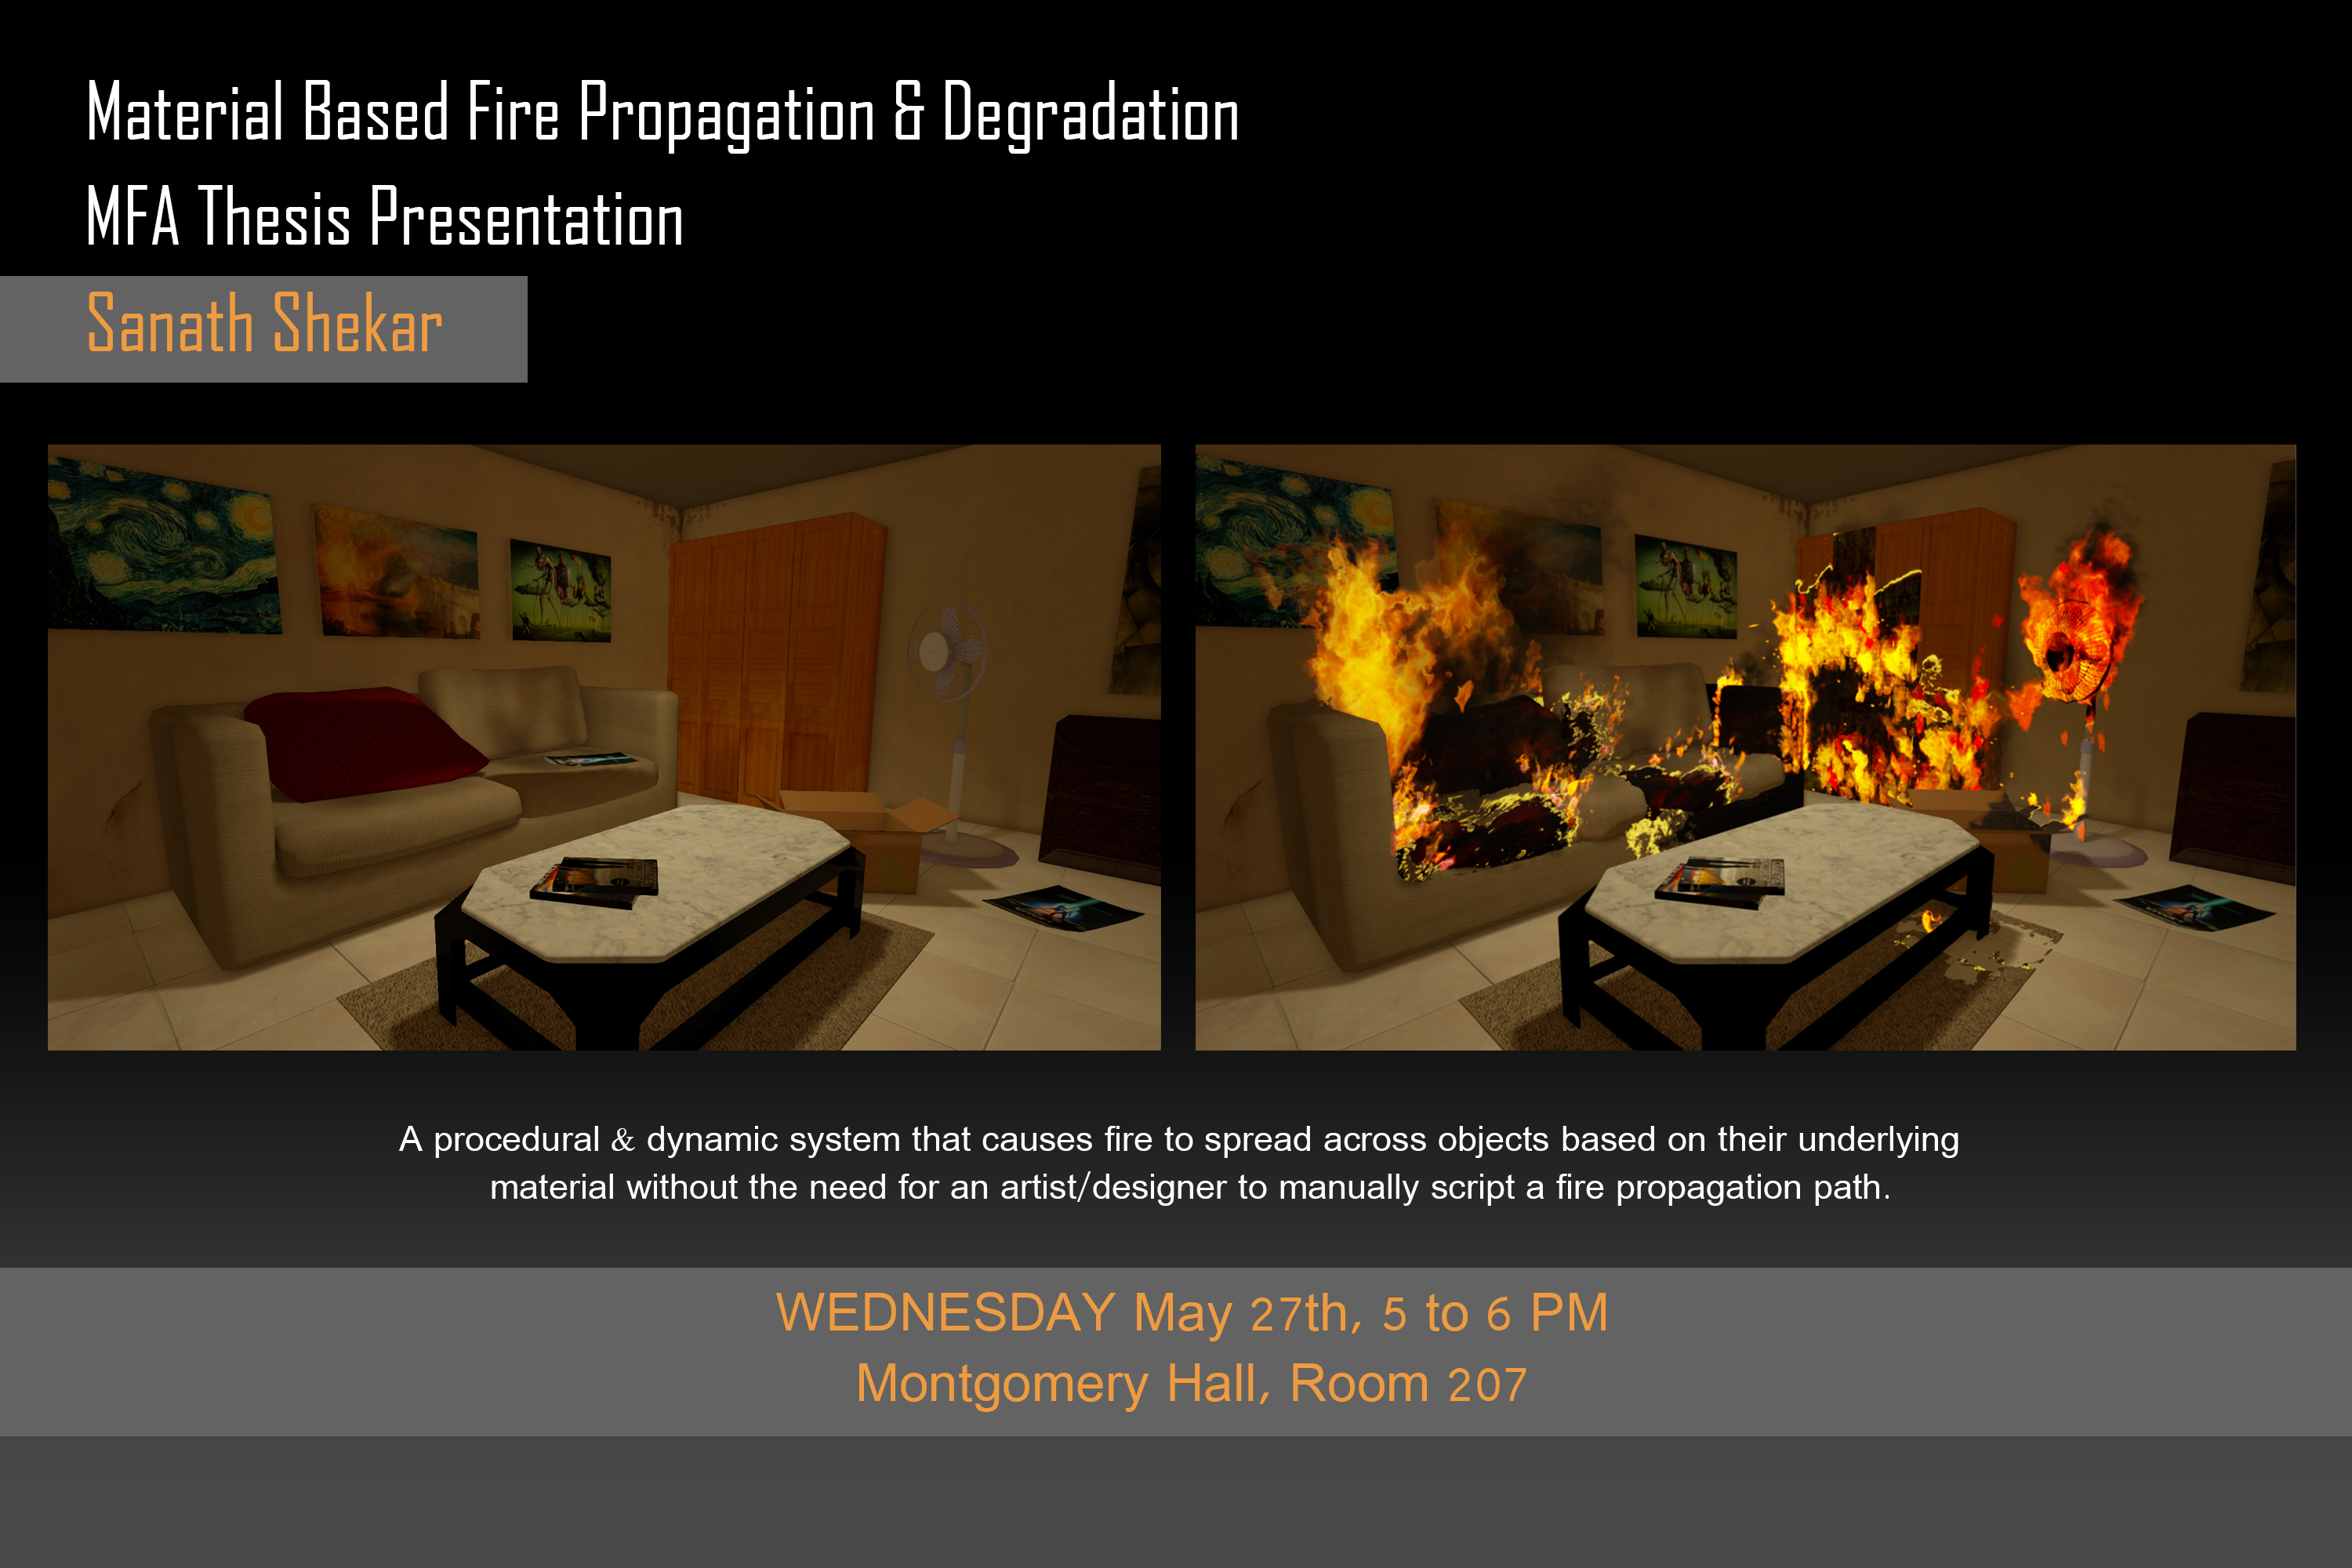 Material Based Fire Propagation & Degradation